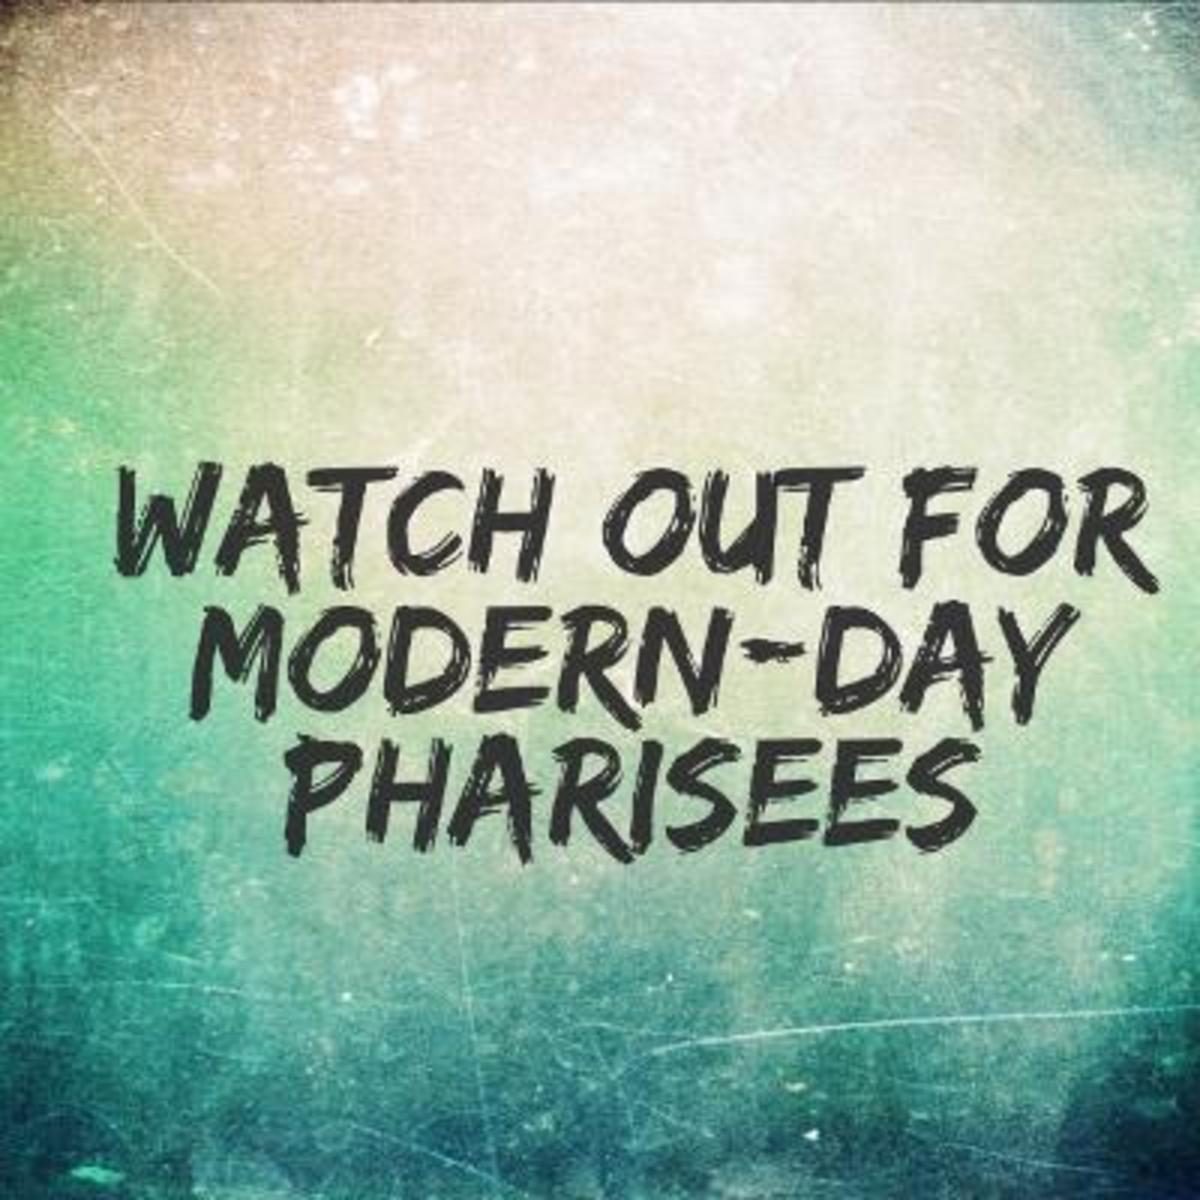 Modern Day Pharisees and How to Deal With Them